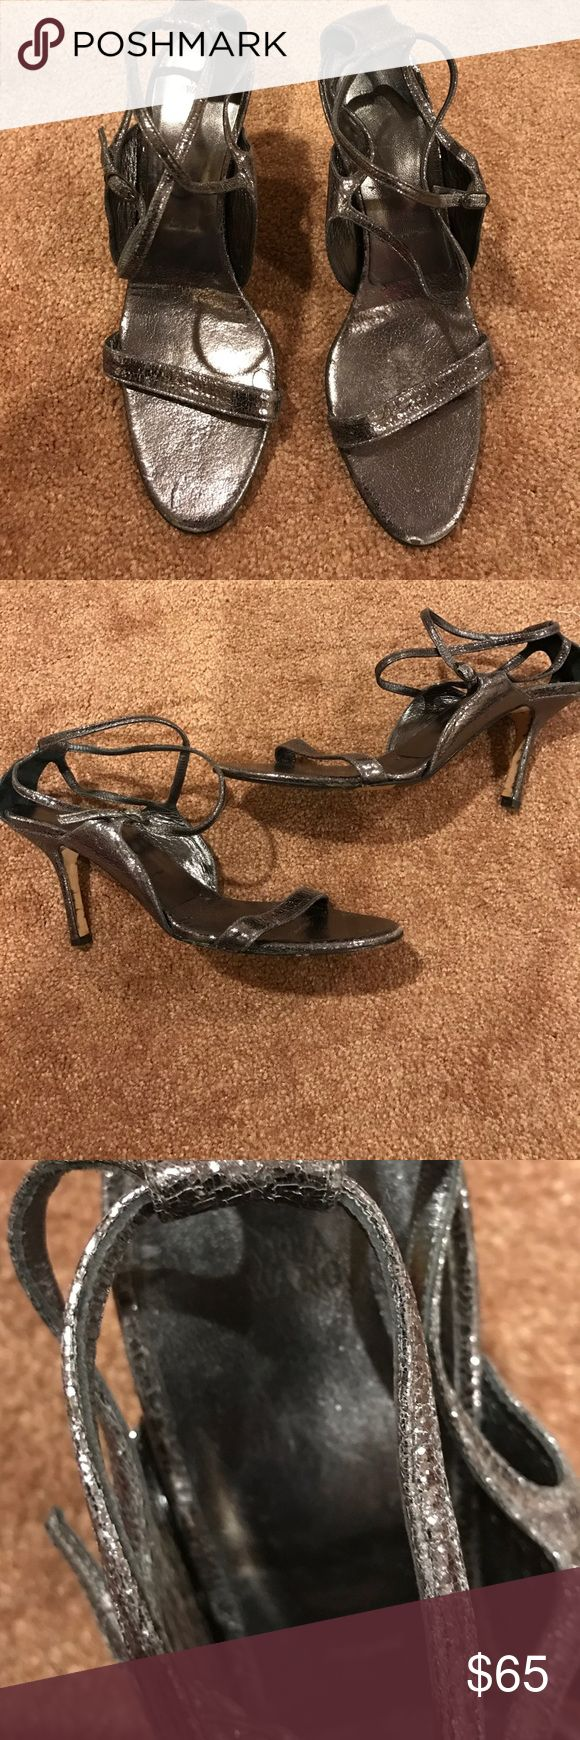 Vera wang strappy pewter silver sandal heels Totally stunning heels! Formal or casual.. please note these are Vera Wang not Princess by Vera wang. Made in Italy. Size 39 worn a handful of times Vera Wang Shoes Sandals